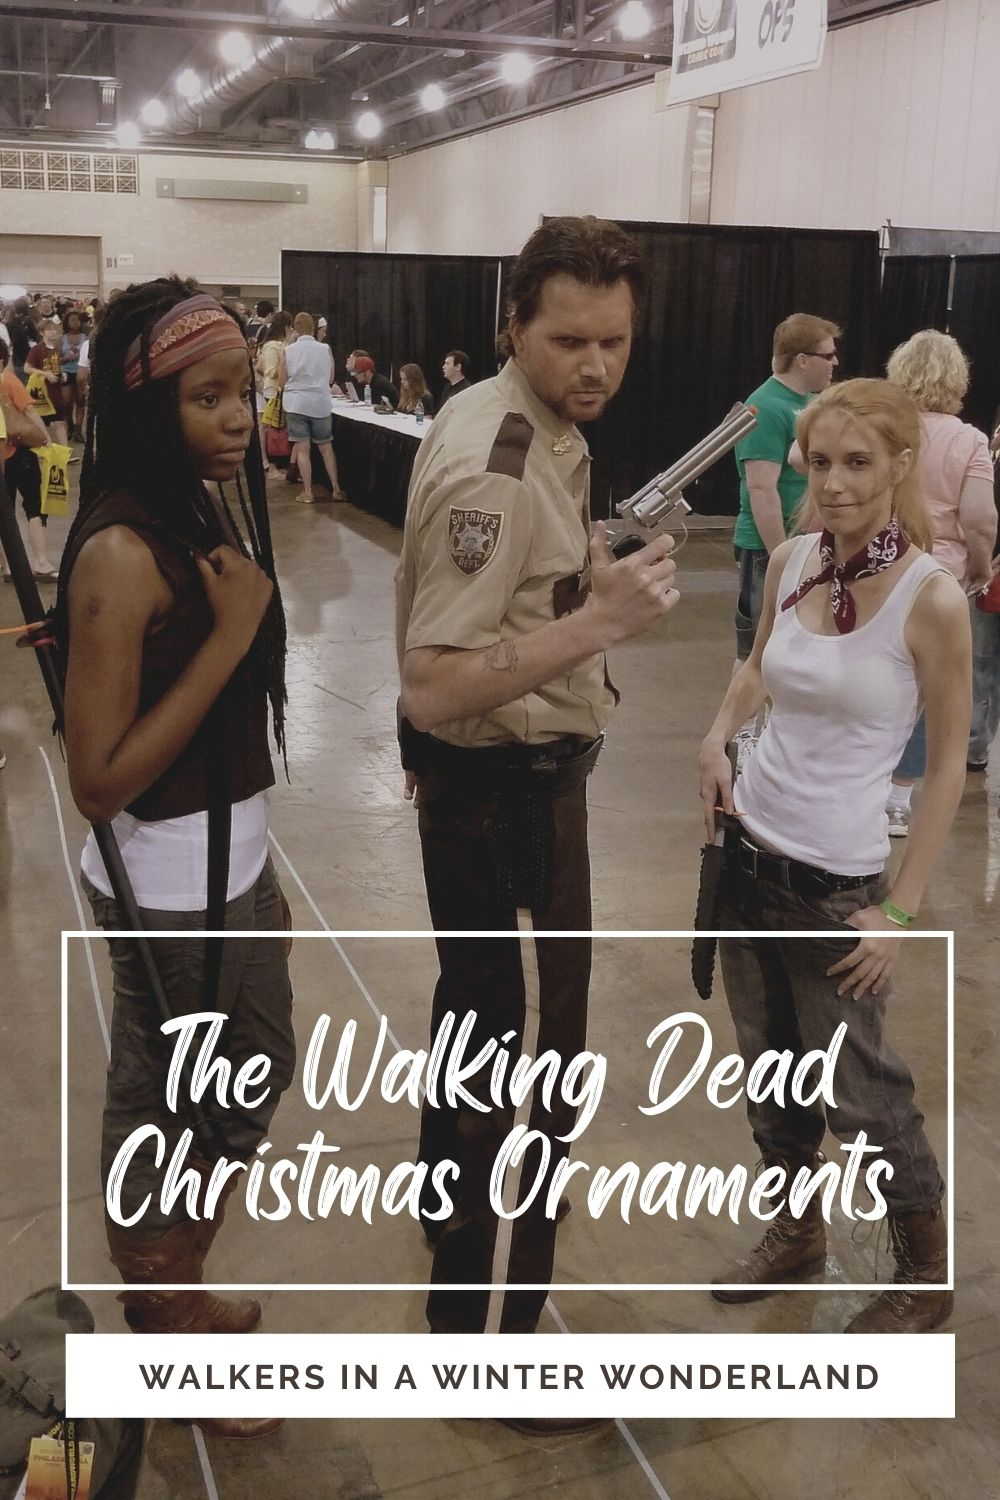 The Walking Dead Christmas Decorations